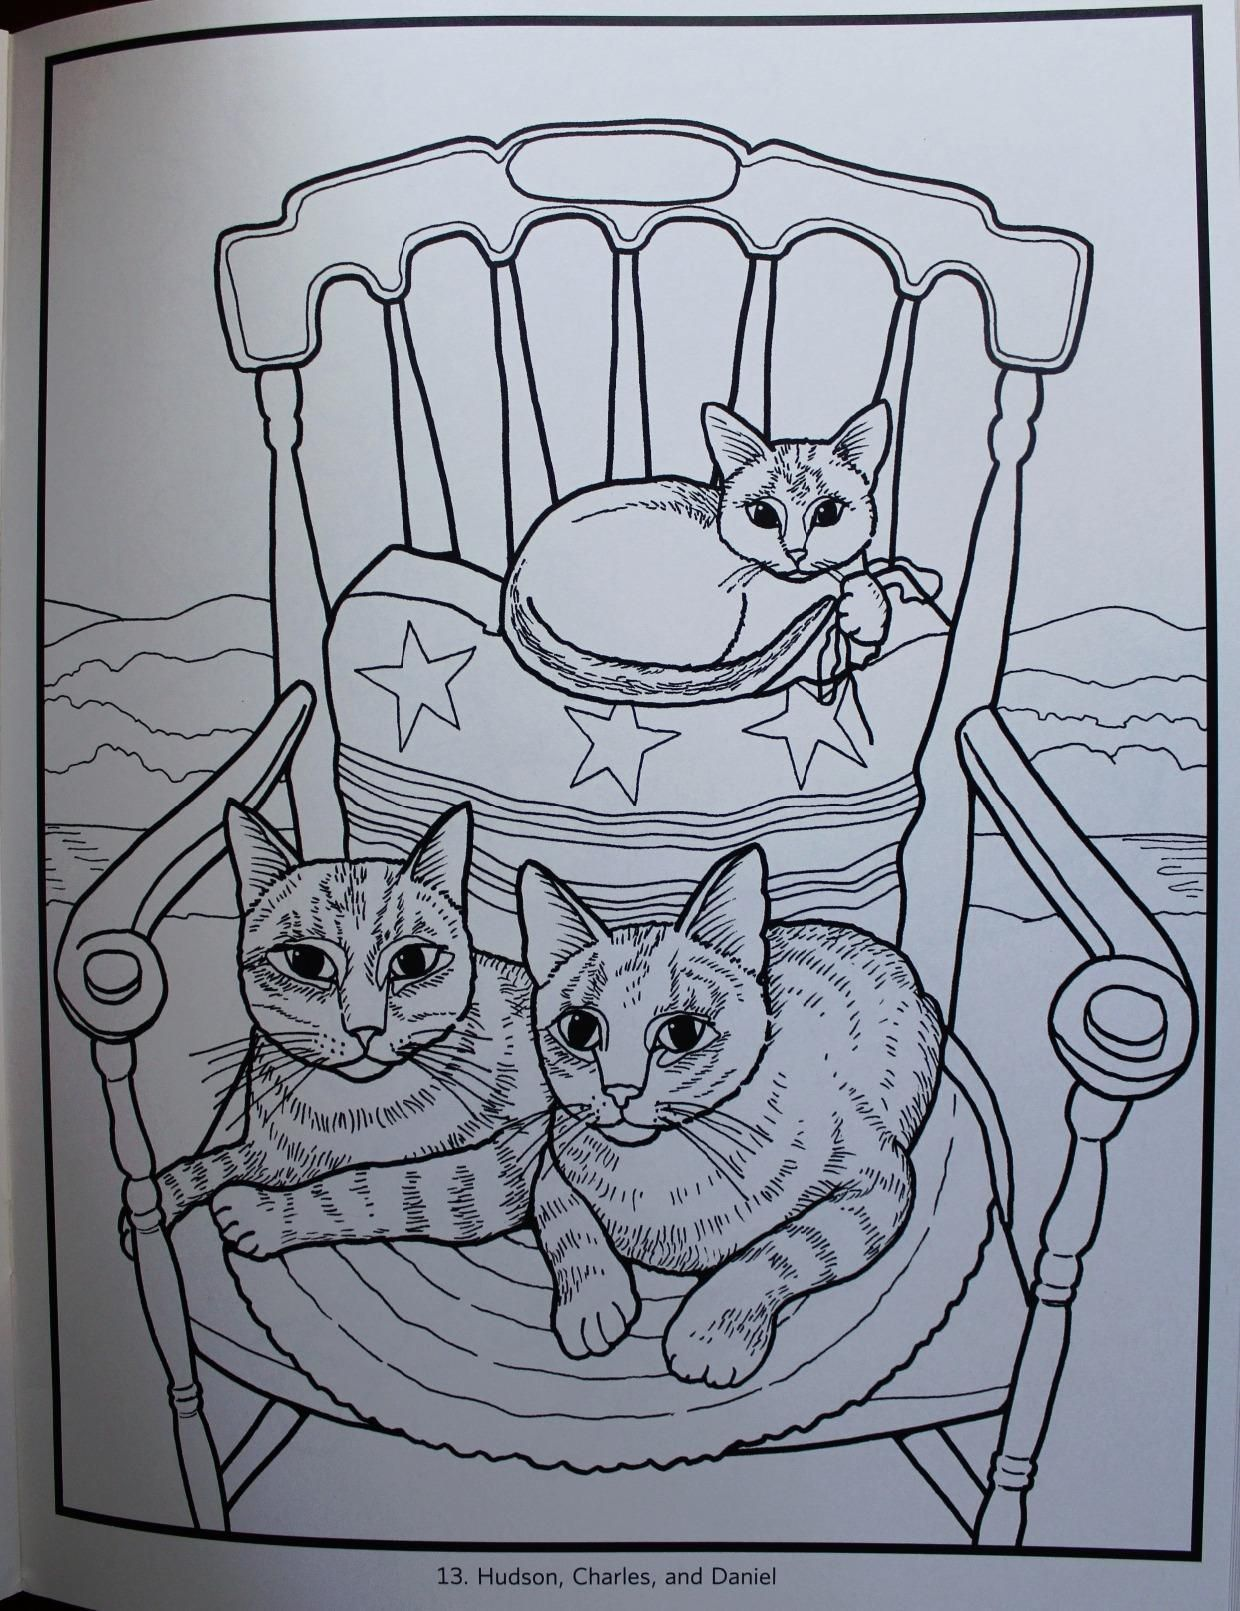 Mimi Vang Olsen Cats Coloring Book Inc Pomegranate Communications 9780764959806 Amazon